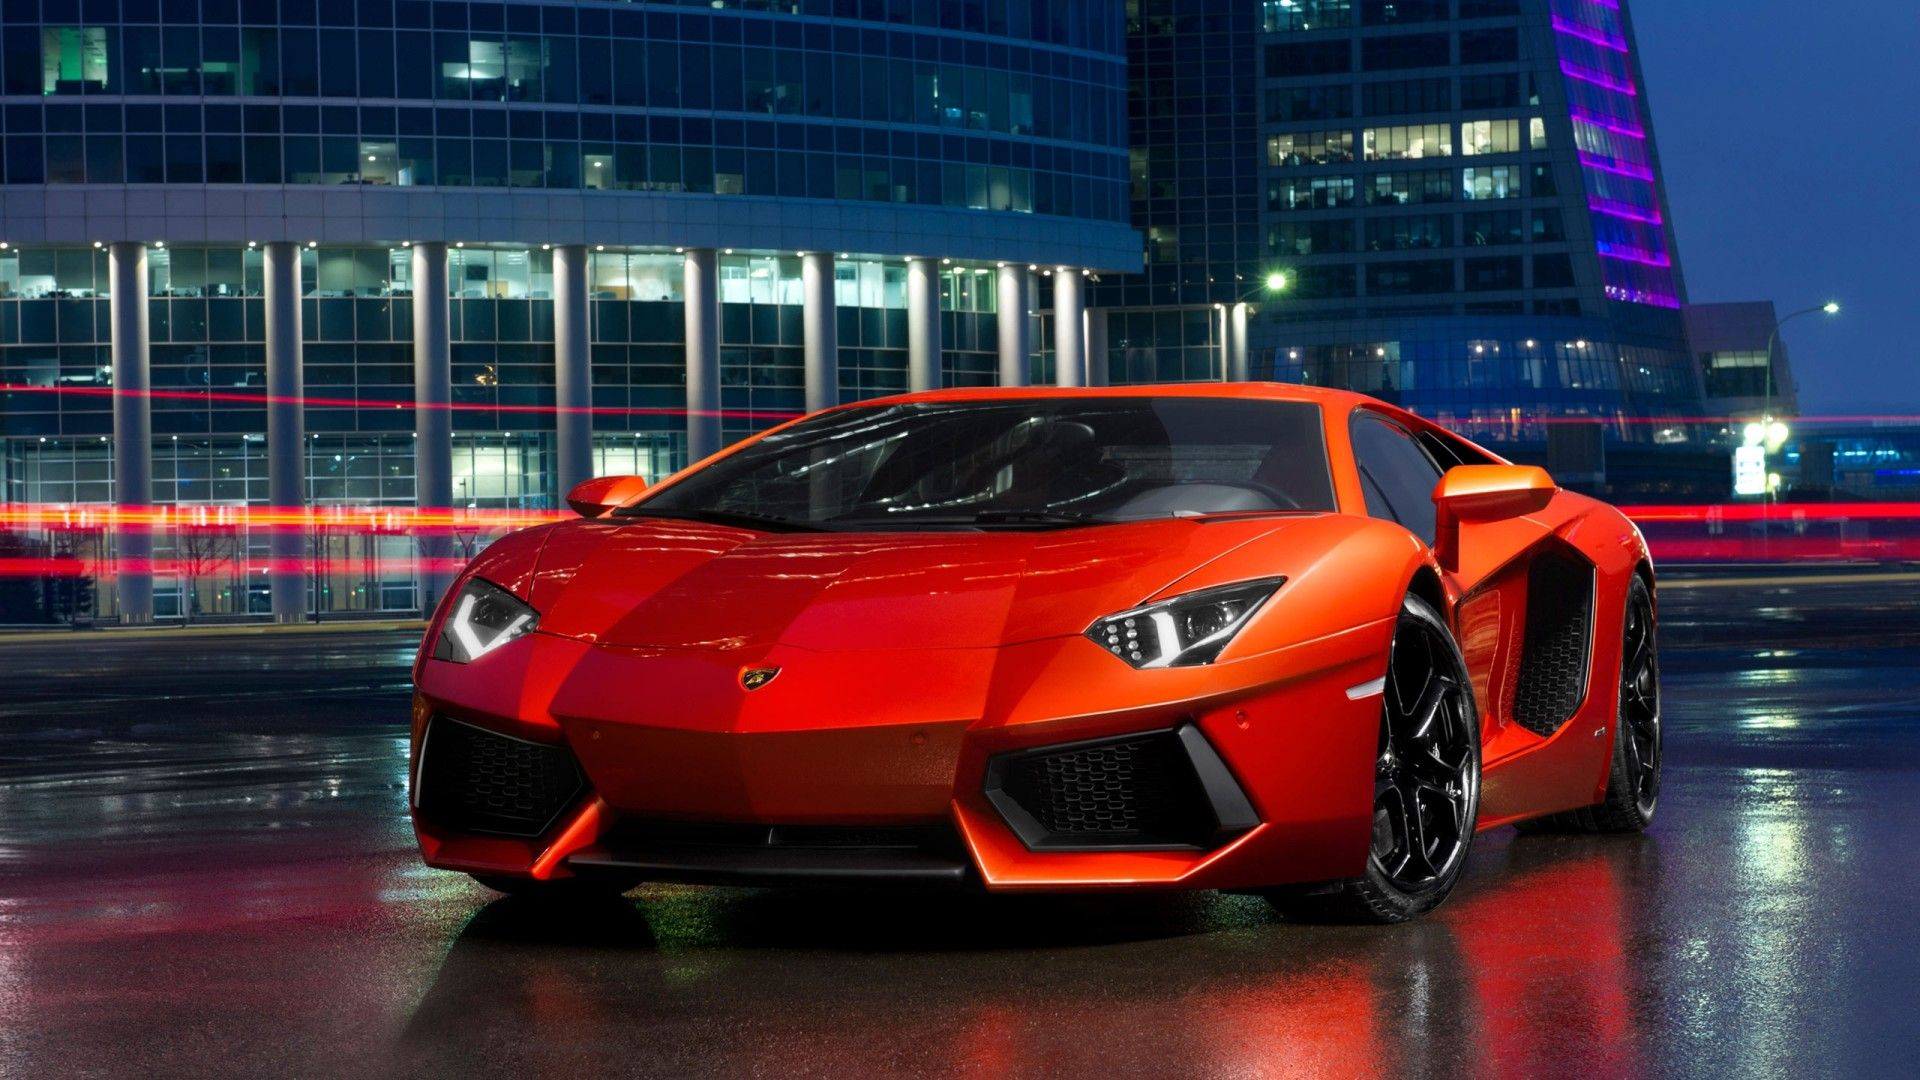 Cool Car Wallpaper High Definition #Hyf | Cars in 2019 | Lamborghini aventador lp700 ...